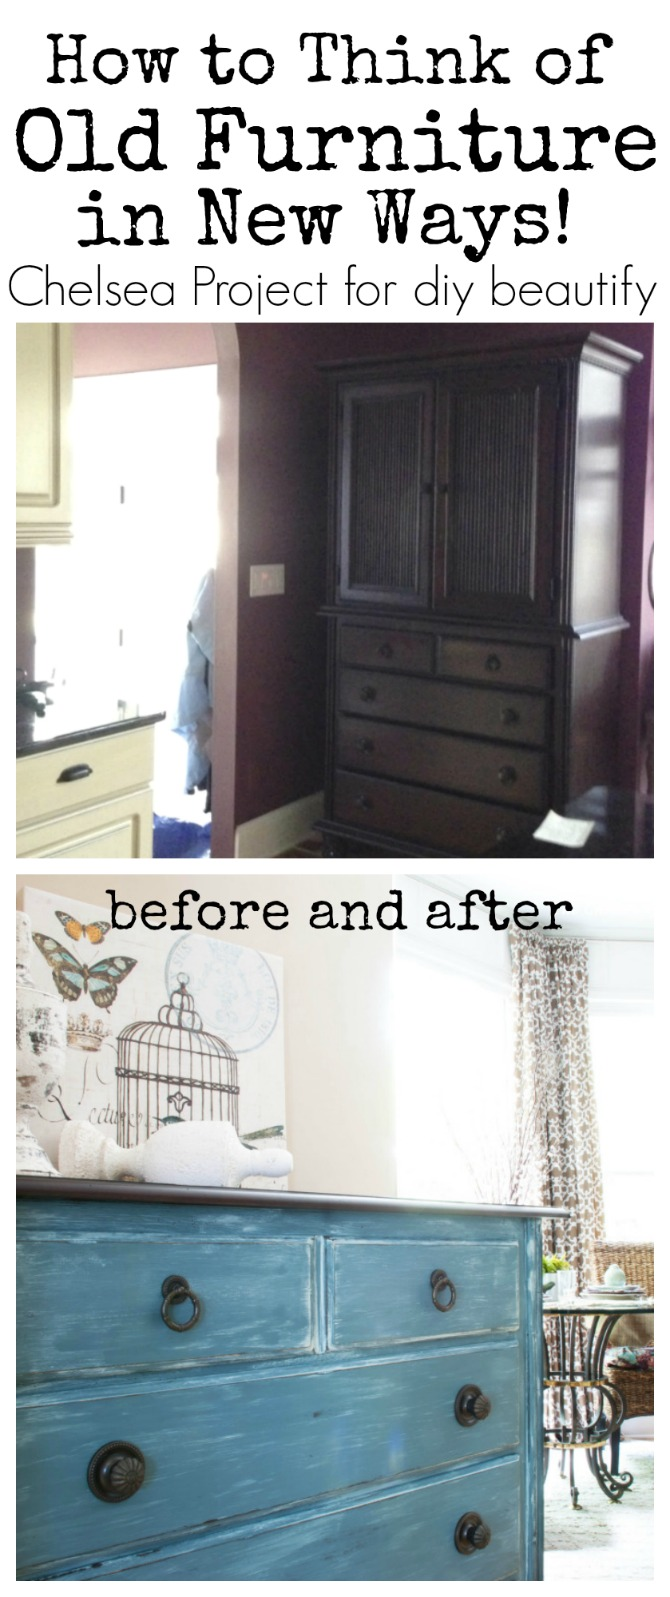 Ideas to repurpose old furniture in new ways